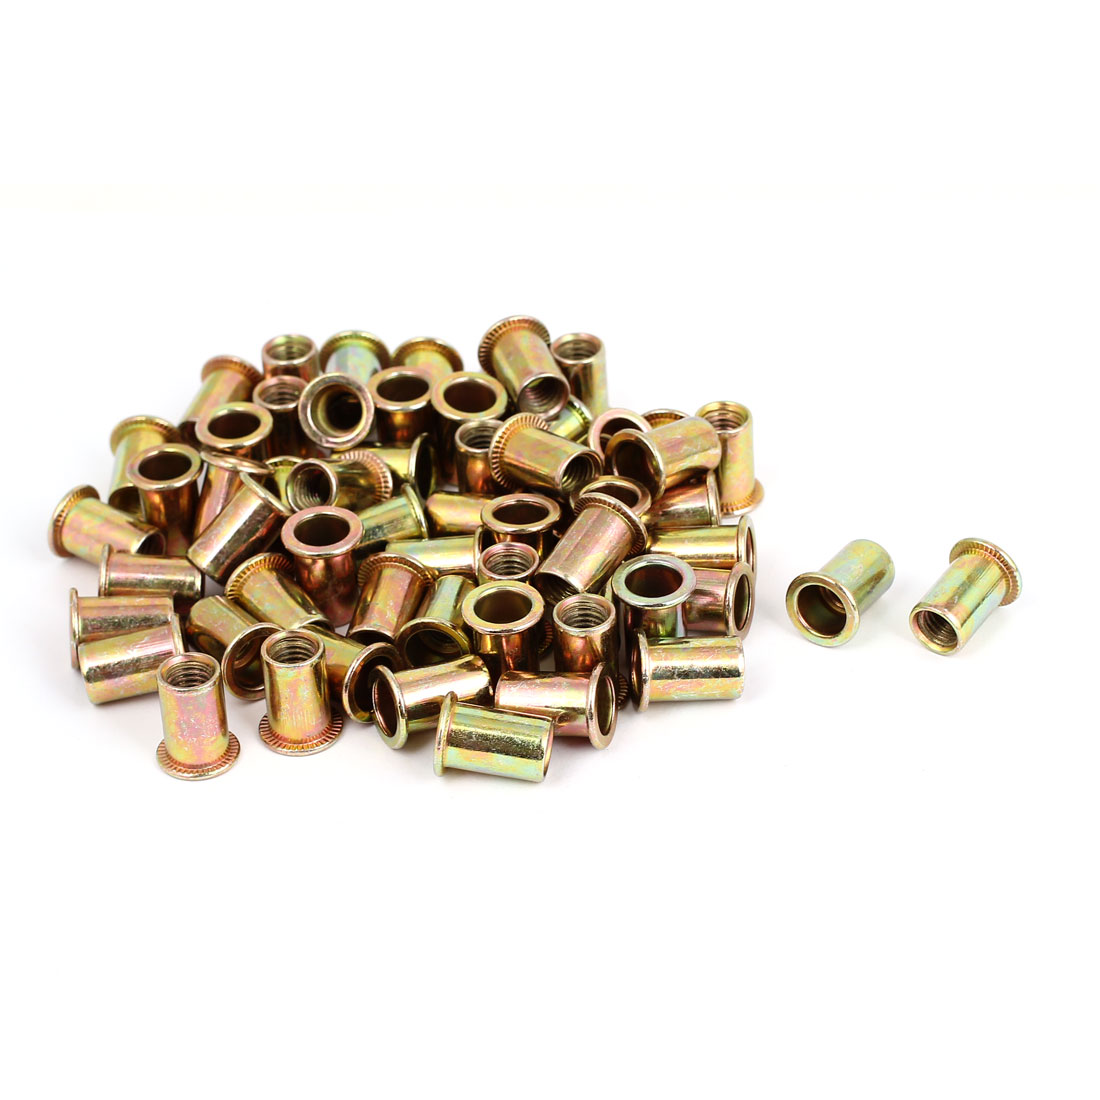 60pcs Flat Head Open End Blind Rivet Nut Insert Nutserts Fastener M8x18mm